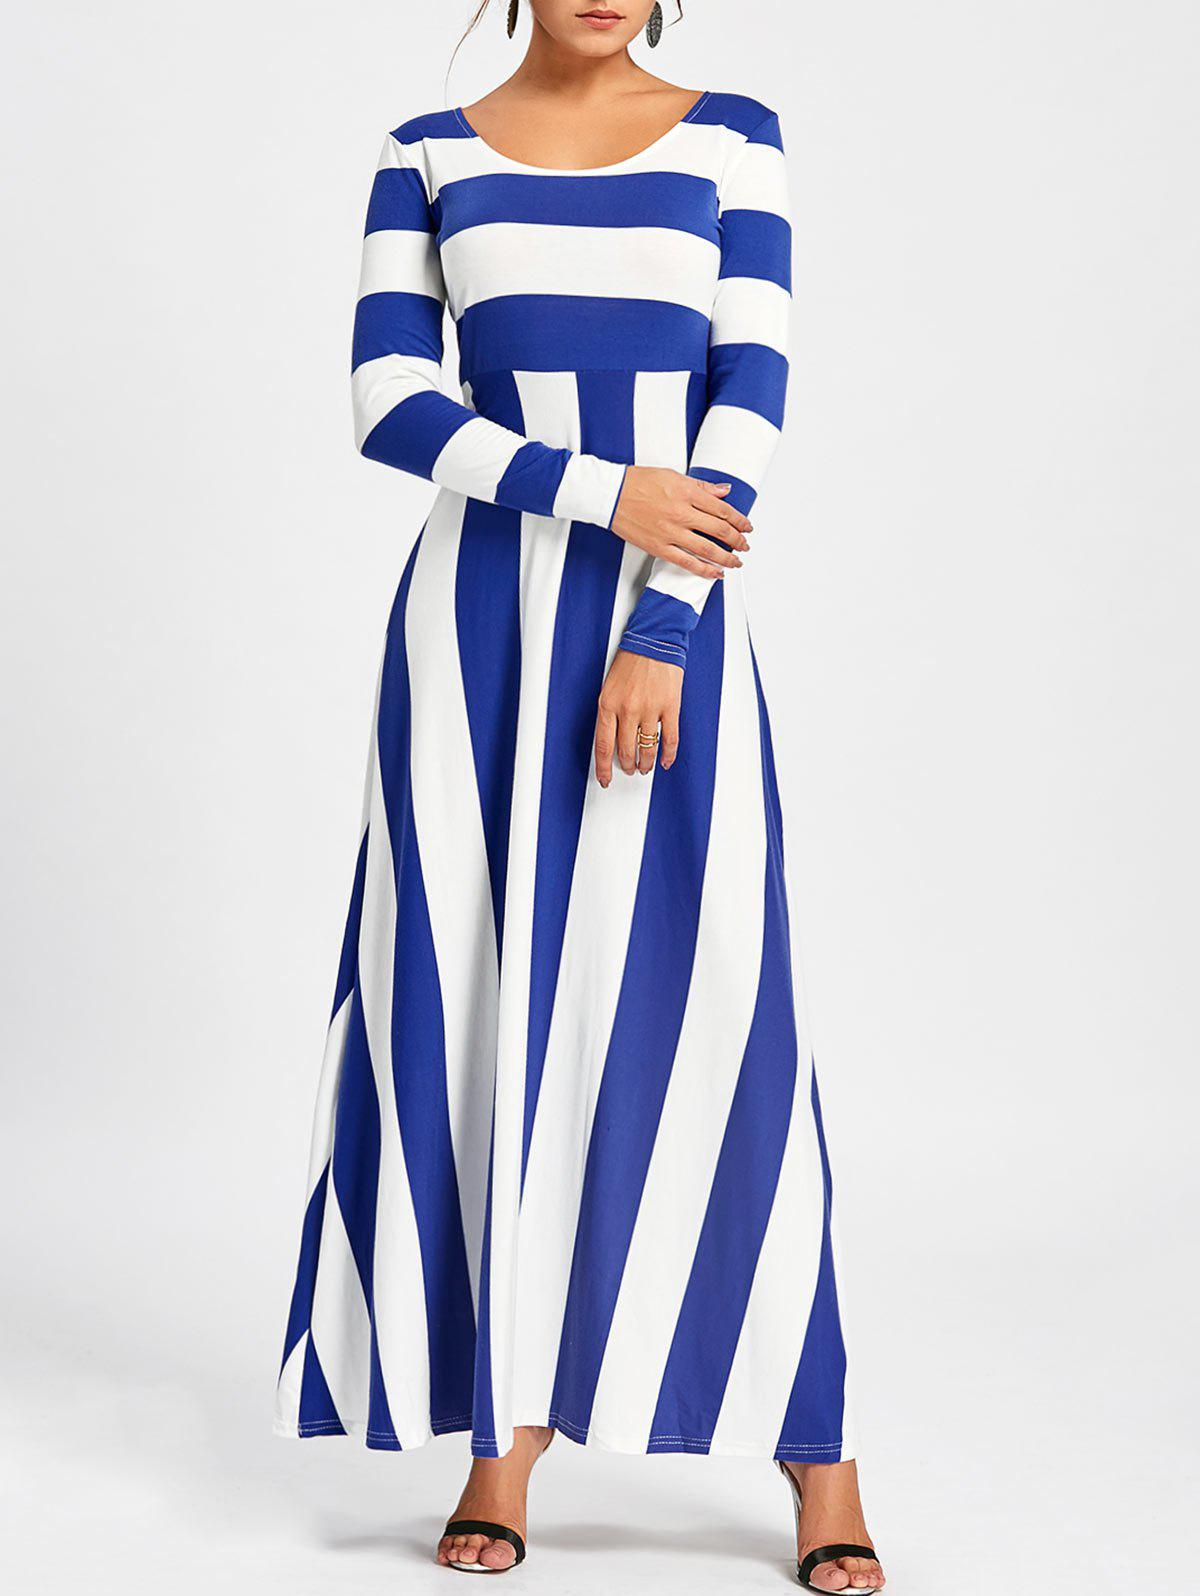 Long Sleeve Striped Maxi DressWOMEN<br><br>Size: 2XL; Color: BLUE; Style: Brief; Material: Polyester,Spandex; Silhouette: A-Line; Dresses Length: Ankle-Length; Neckline: Round Collar; Sleeve Length: Long Sleeves; Pattern Type: Striped; With Belt: No; Season: Fall,Spring; Weight: 0.5500kg; Package Contents: 1 x Dress; Occasion: Casual;